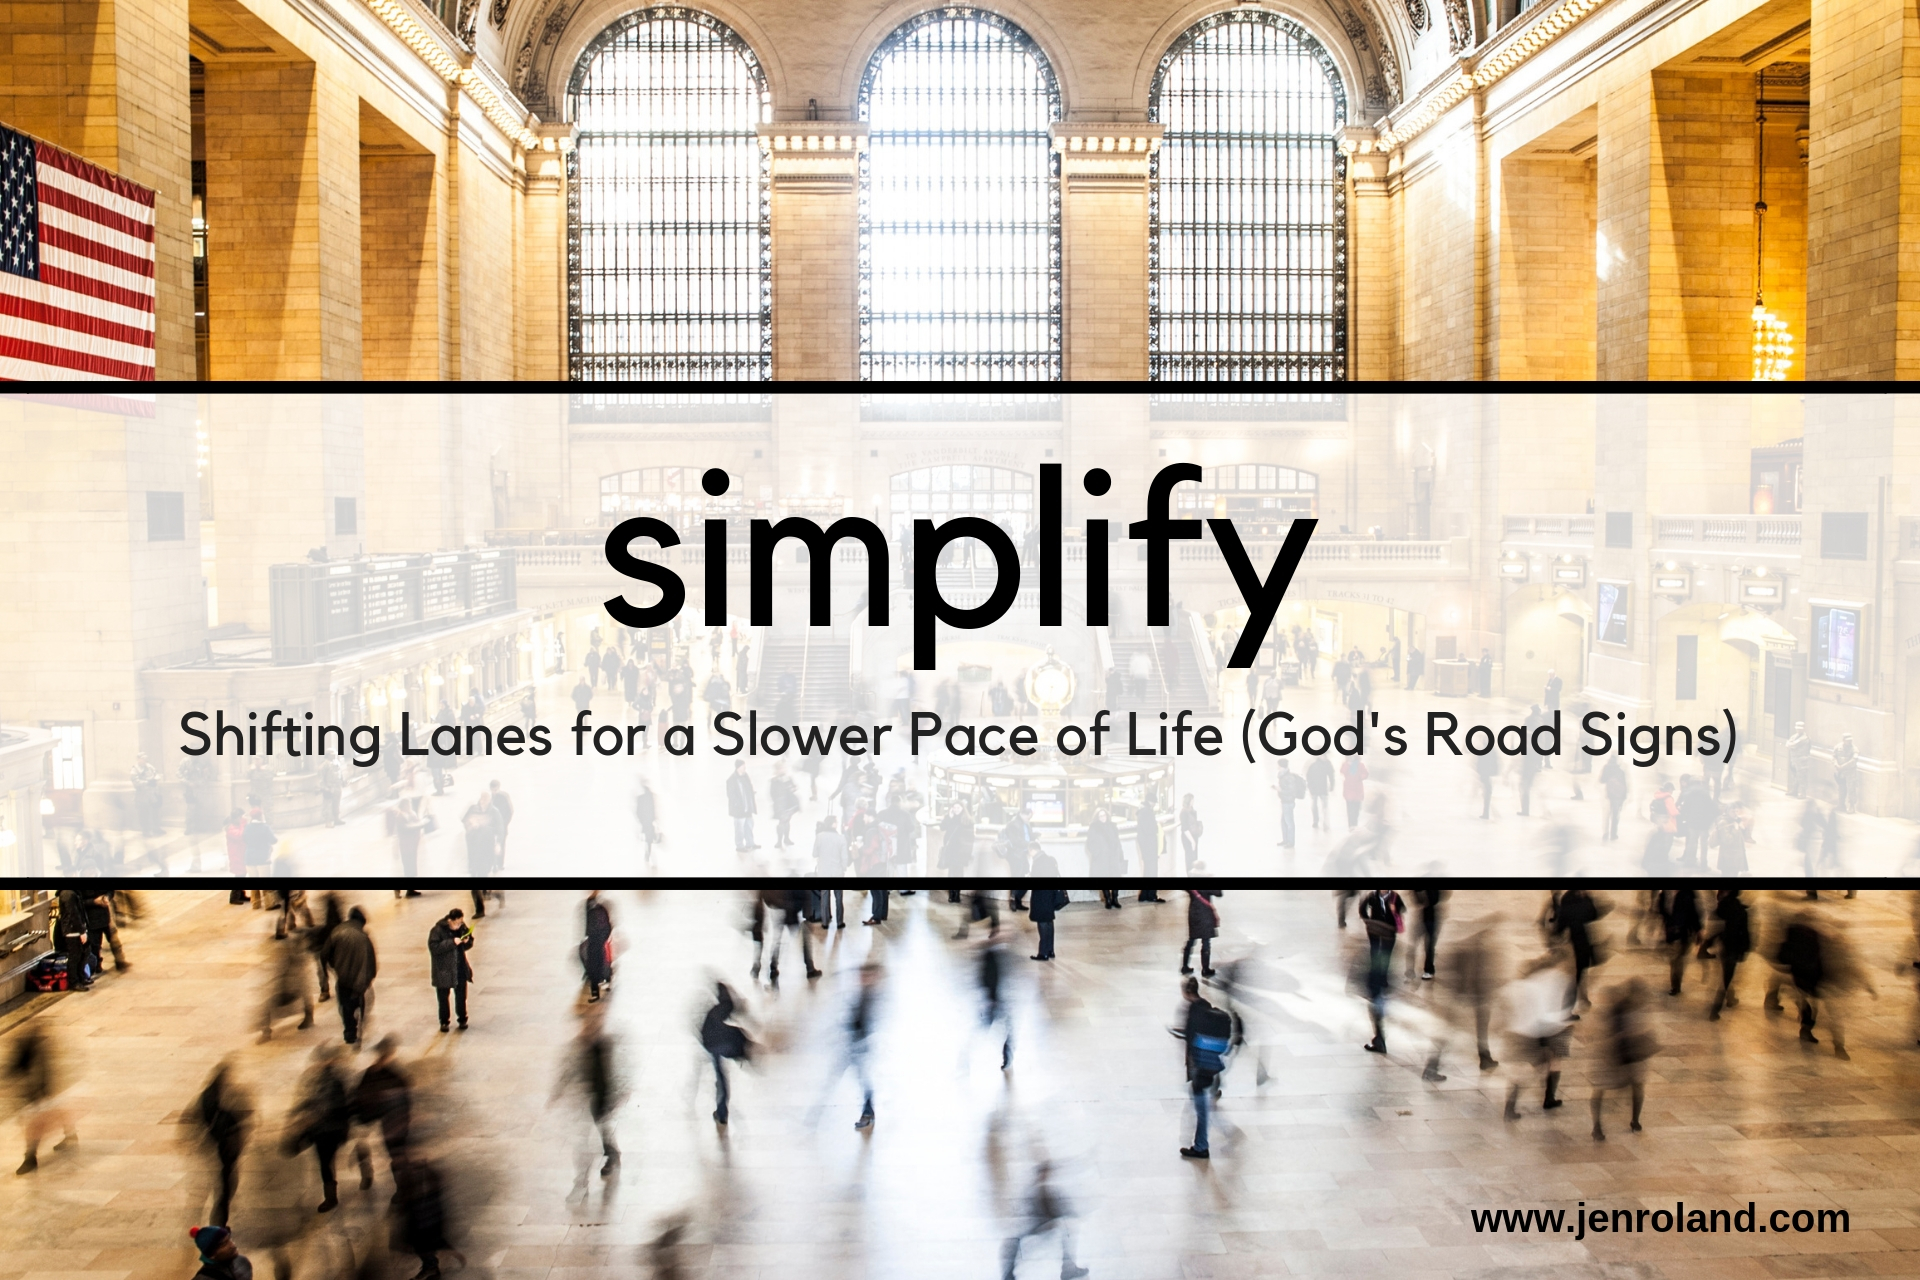 Shifting Lanes for a Slower Pace of Life - God's Road Signs -